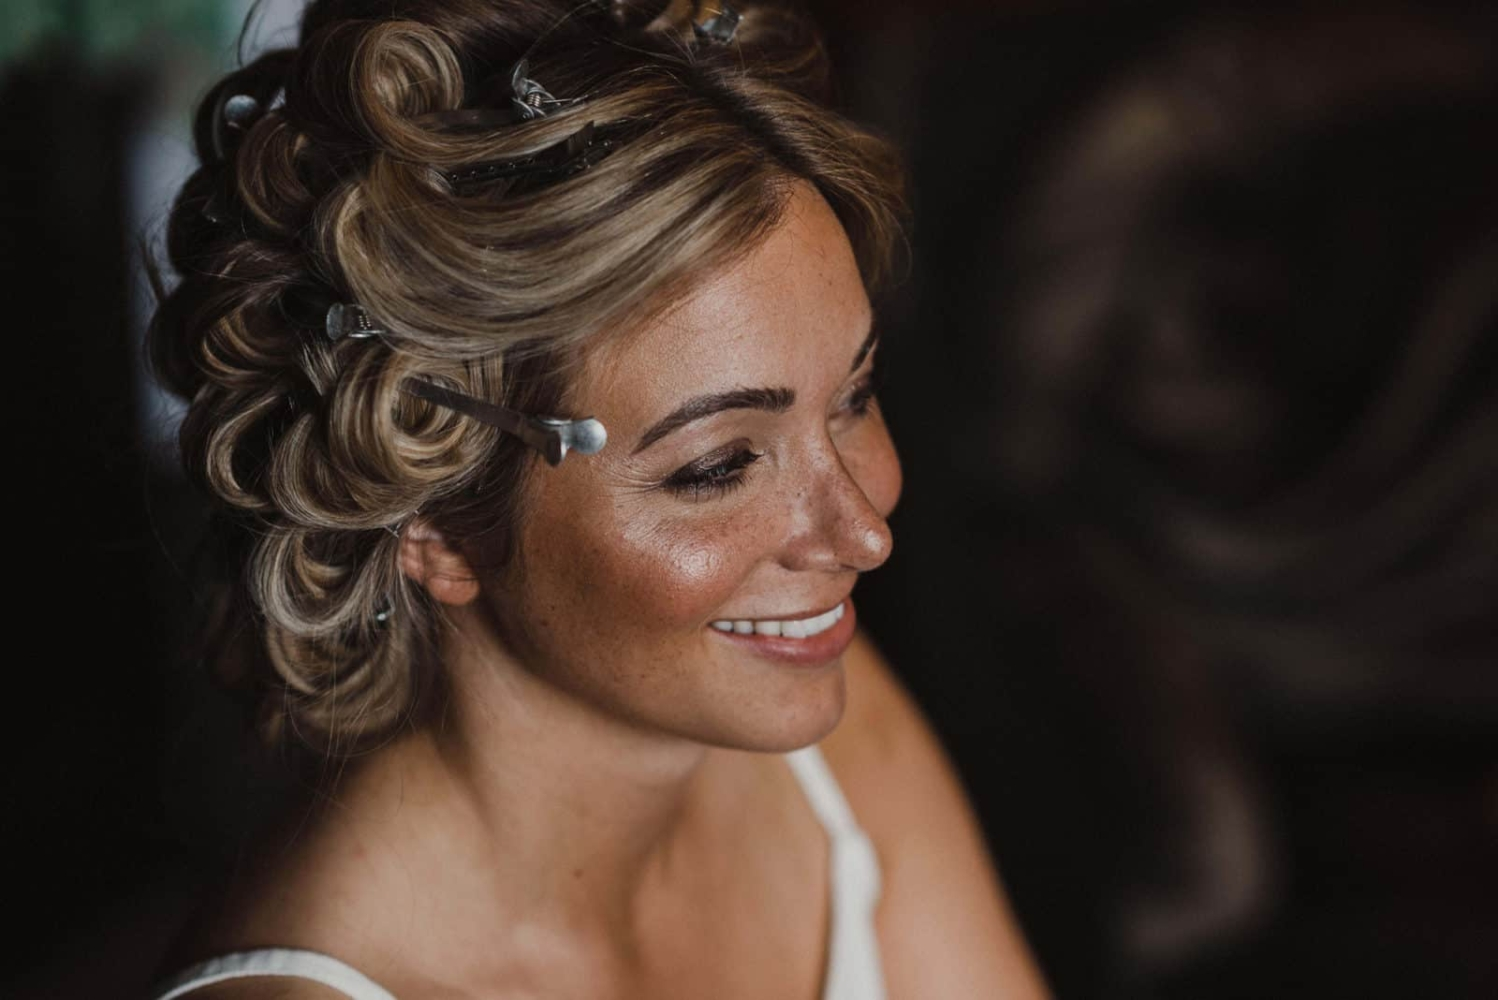 happy bride with natural makeup and hair rollers preparing for wedding ceremony